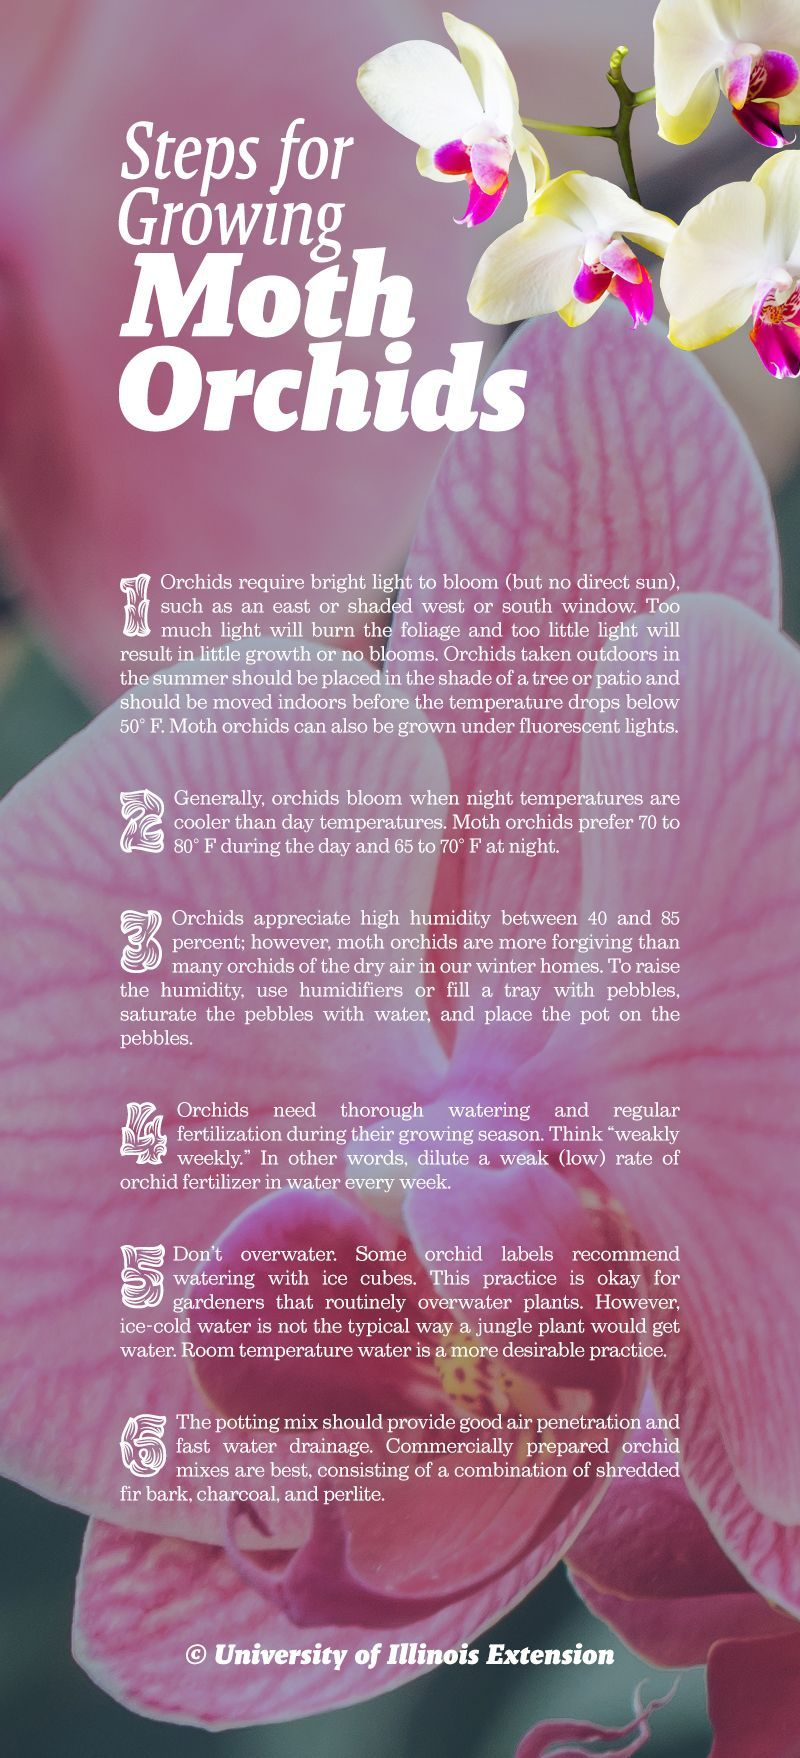 Learn the basics for caring for your moth orchid orchids